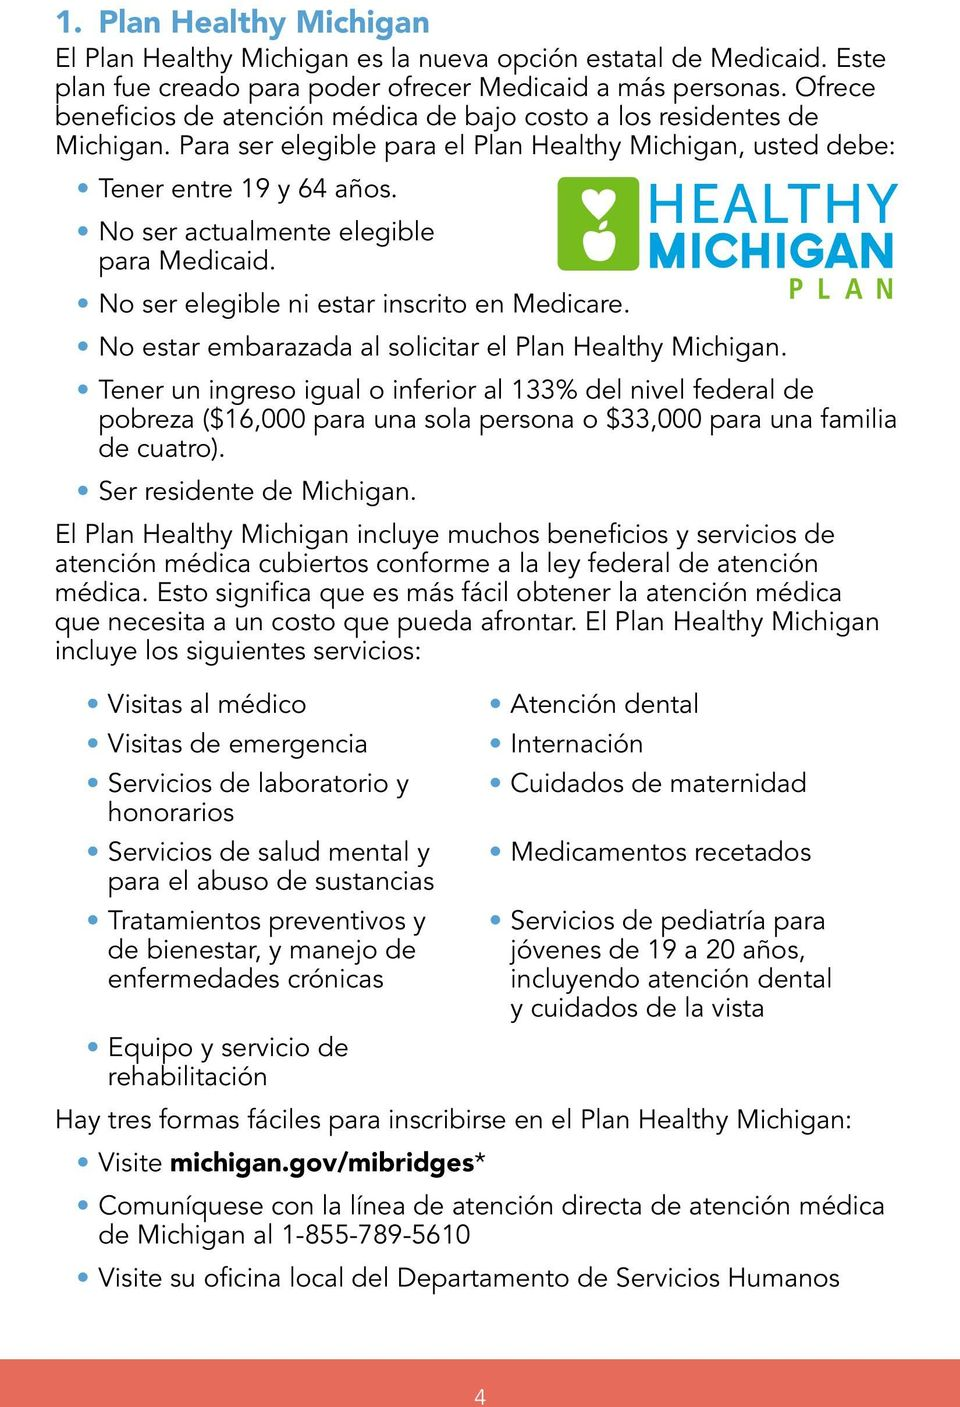 No ser actualmente elegible para Medicaid. No ser elegible ni estar inscrito en Medicare. No estar embarazada al solicitar el Plan Healthy Michigan.